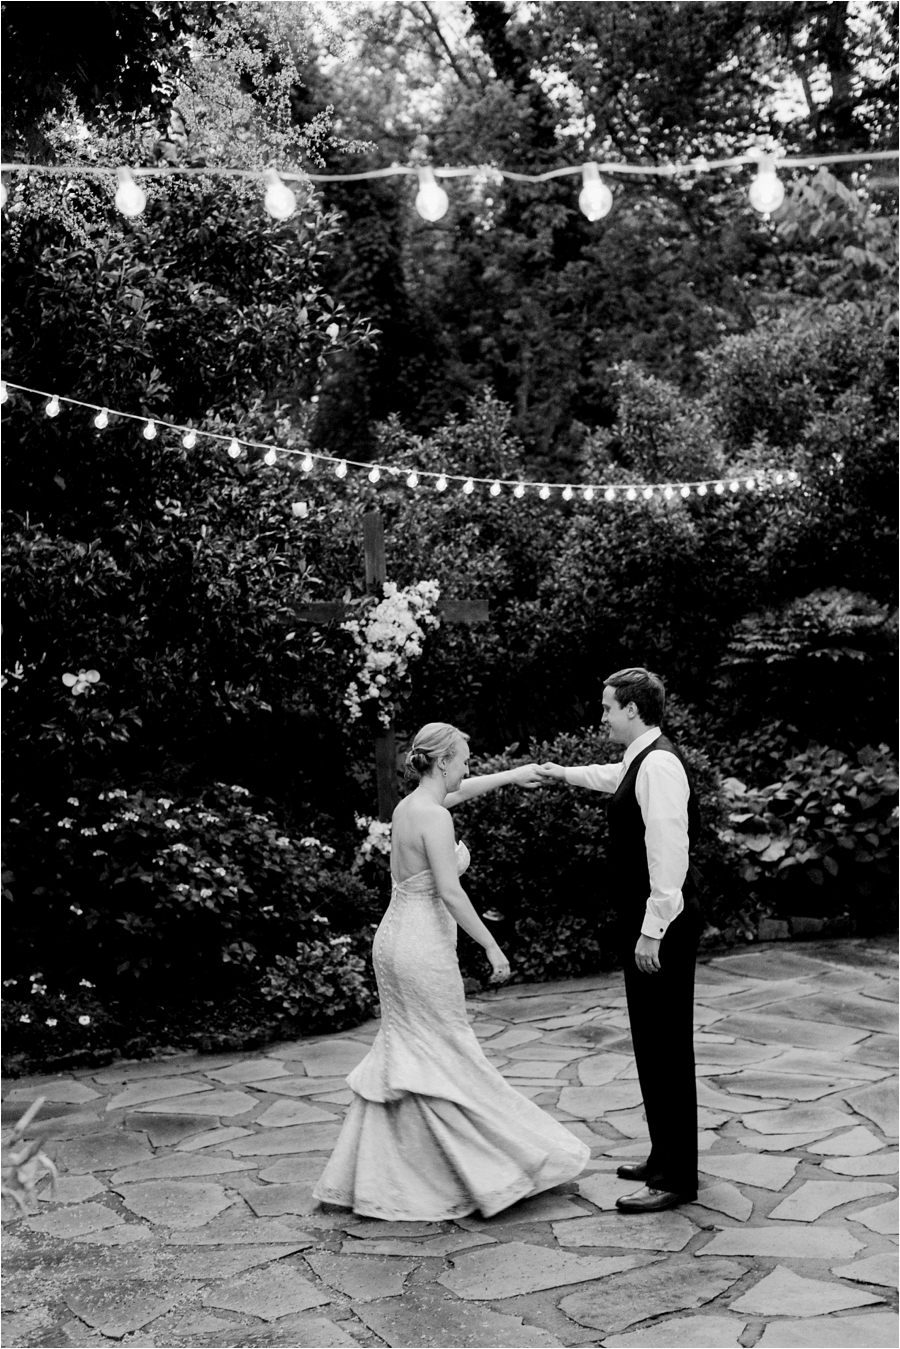 summer wedding cj's off the square by charlottesville wedding photographer, Amy Nicole Photography_0178